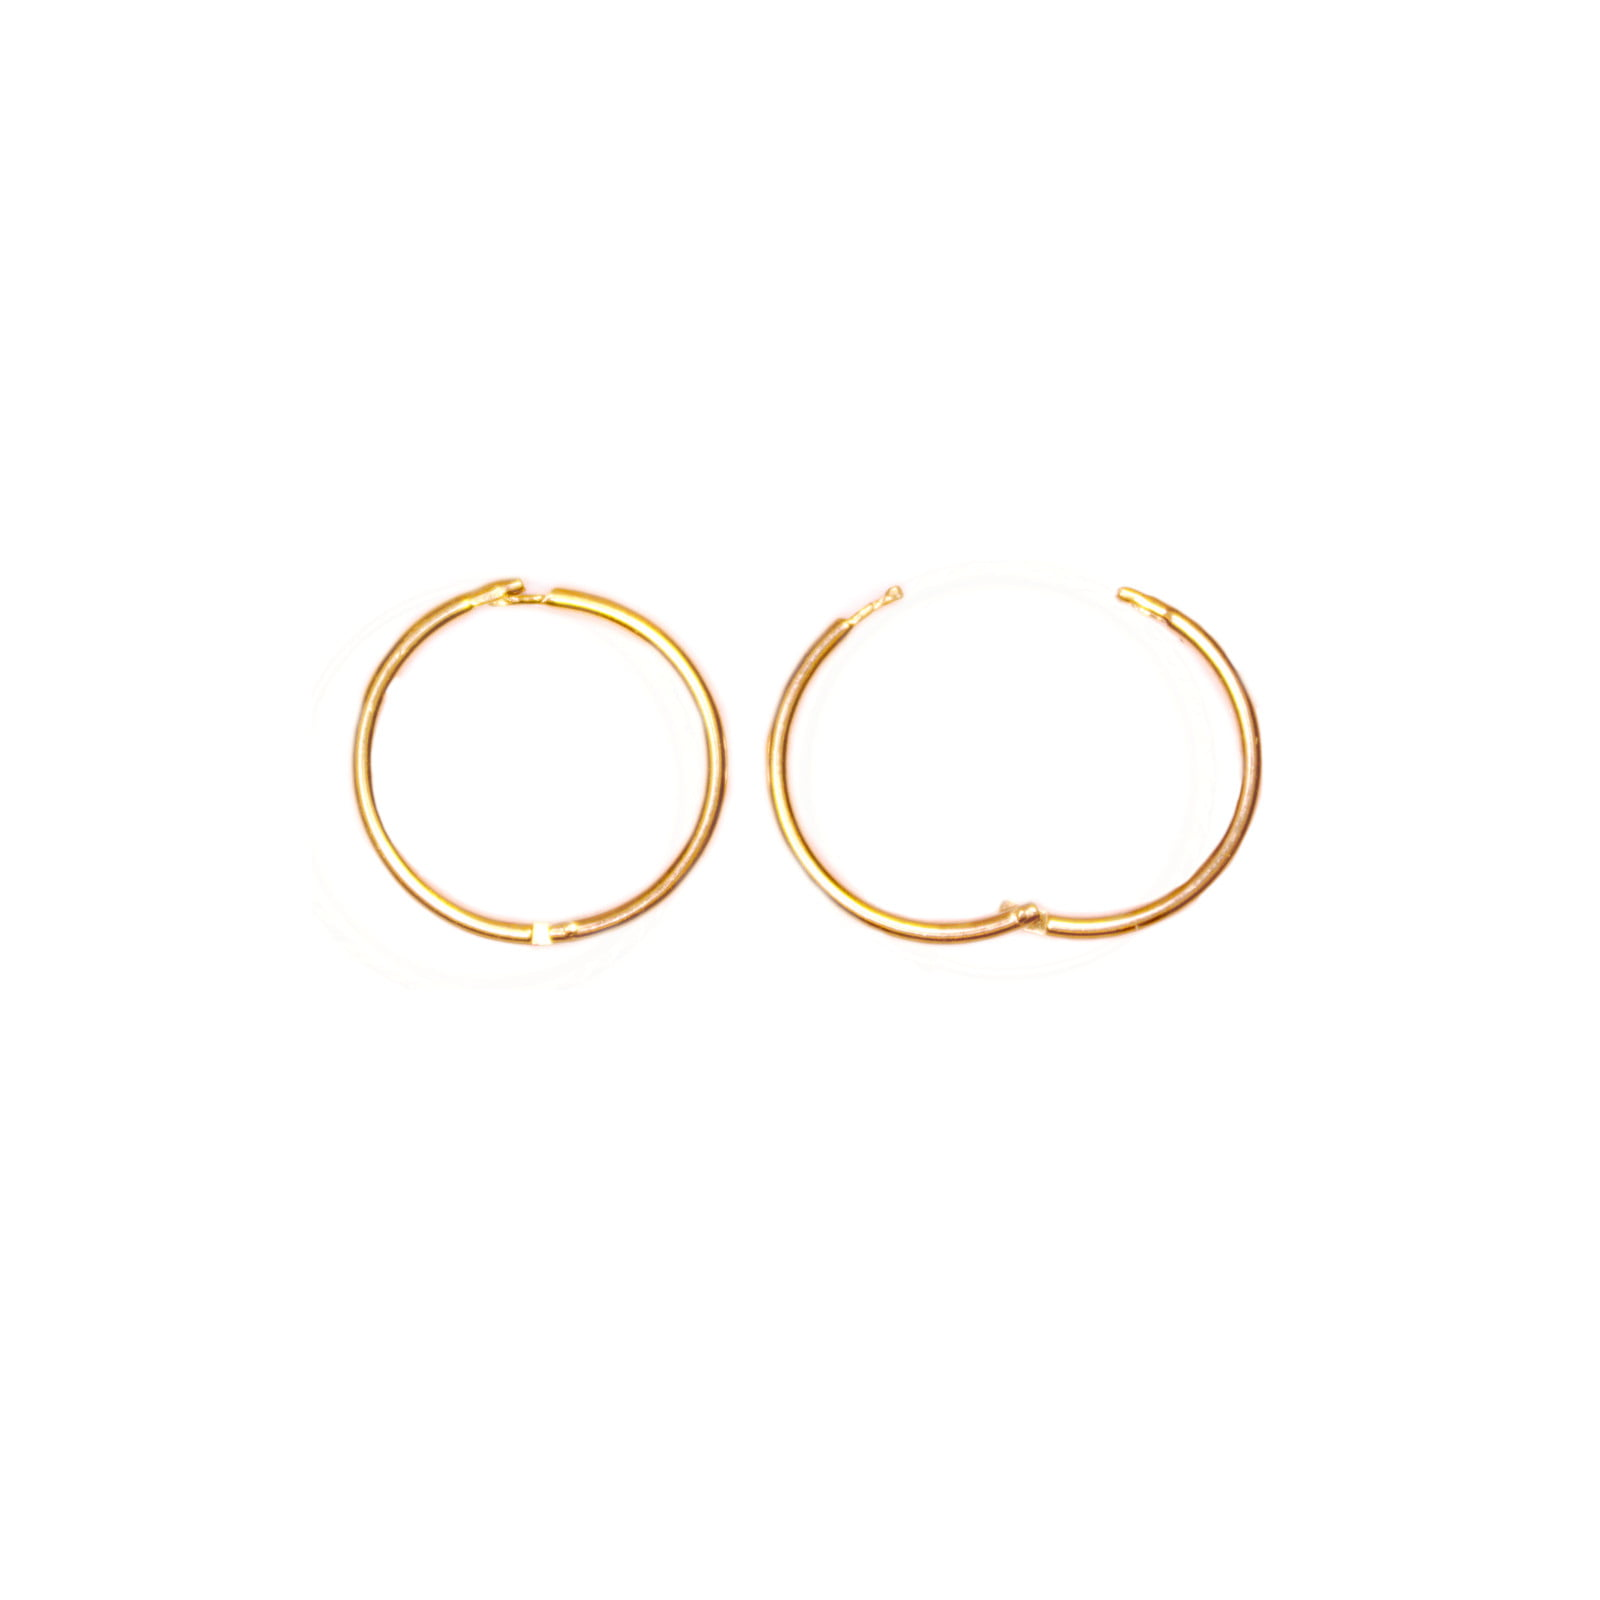 Pair of 9ct yellow gold hinged hoop earrings. 12mm across.